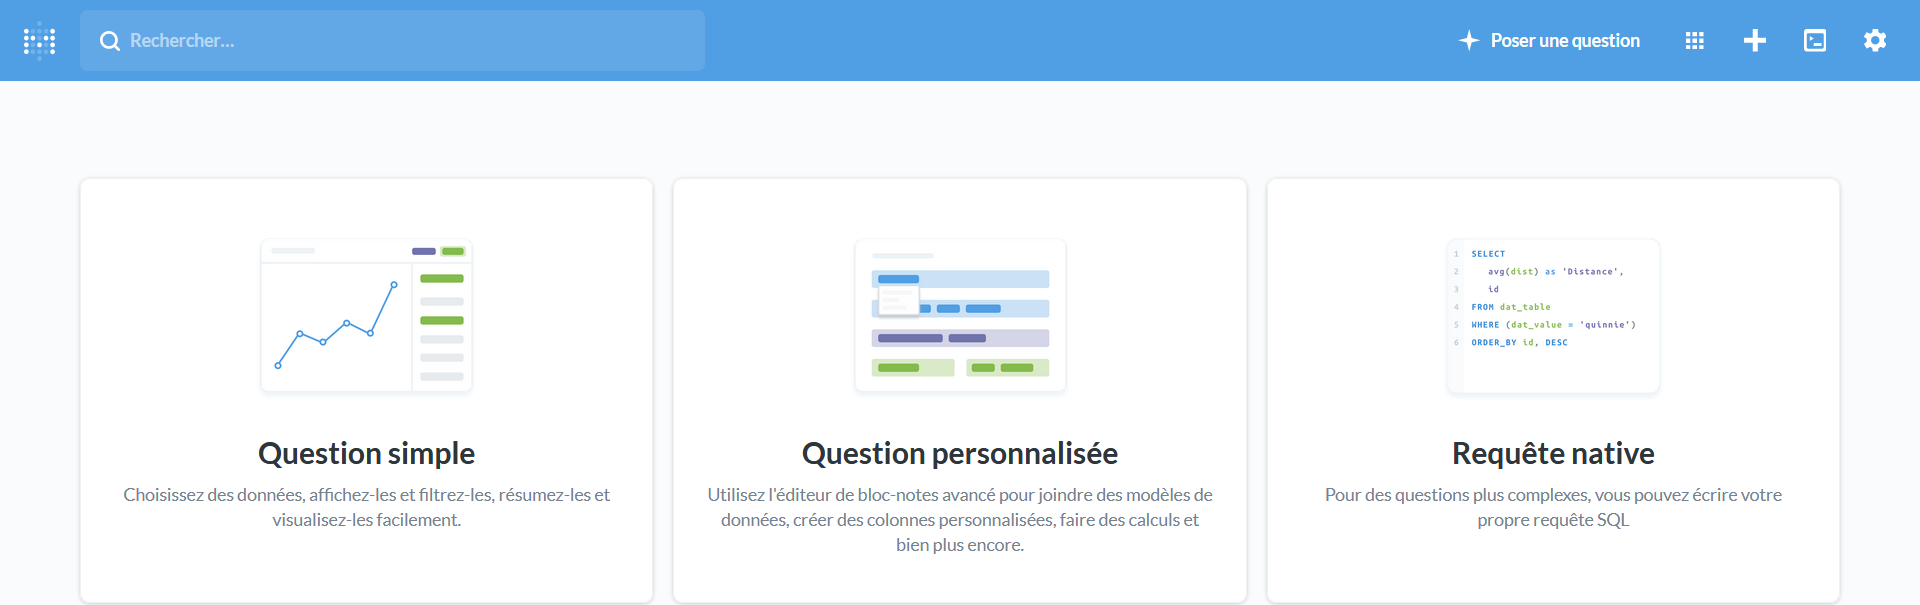 Interface Metabase - Poser une question